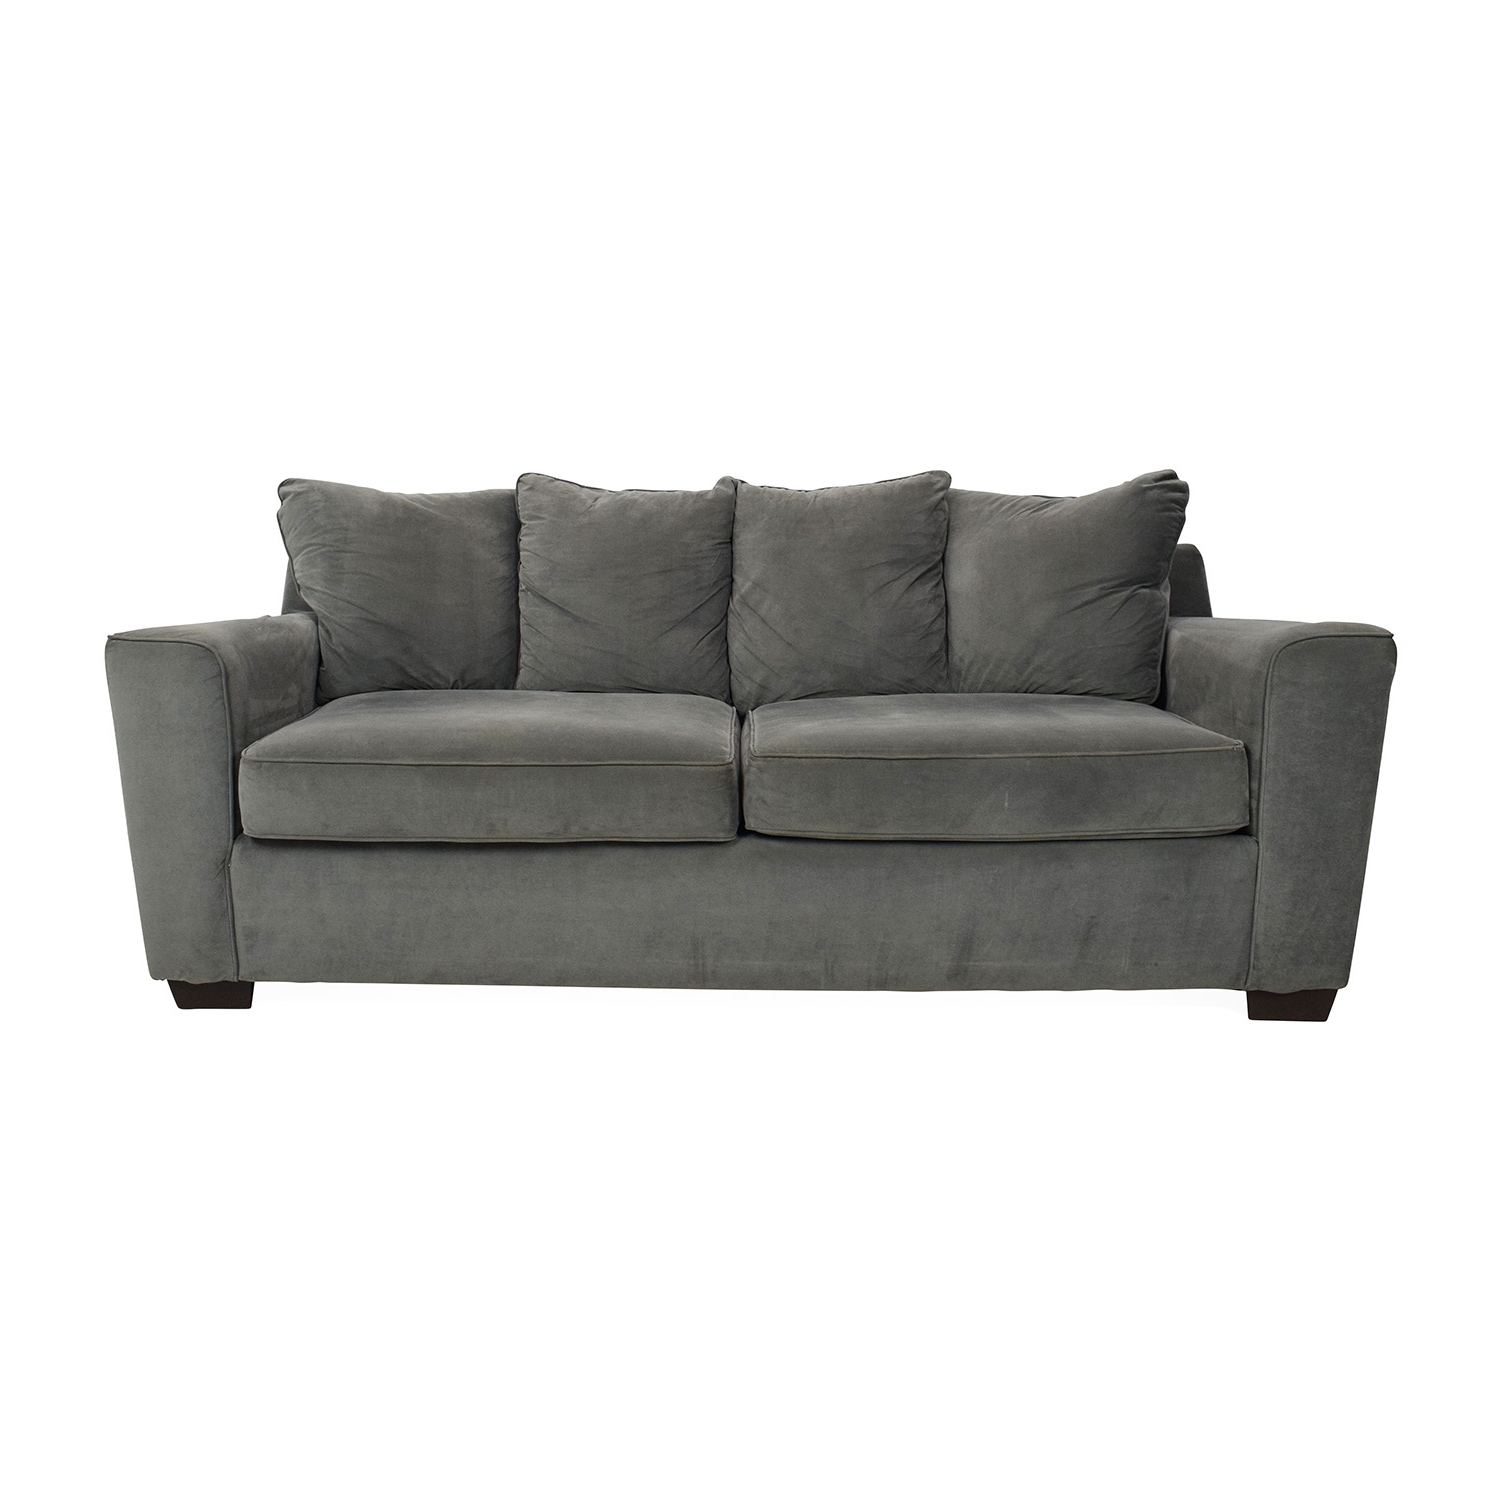 [%53% Off – Jennifer Convertibles Jennifer Convertibles Grey Couch Pertaining To Current Jennifer Sofas|Jennifer Sofas Within Well Known 53% Off – Jennifer Convertibles Jennifer Convertibles Grey Couch|Preferred Jennifer Sofas Within 53% Off – Jennifer Convertibles Jennifer Convertibles Grey Couch|Fashionable 53% Off – Jennifer Convertibles Jennifer Convertibles Grey Couch With Regard To Jennifer Sofas%] (View 5 of 15)